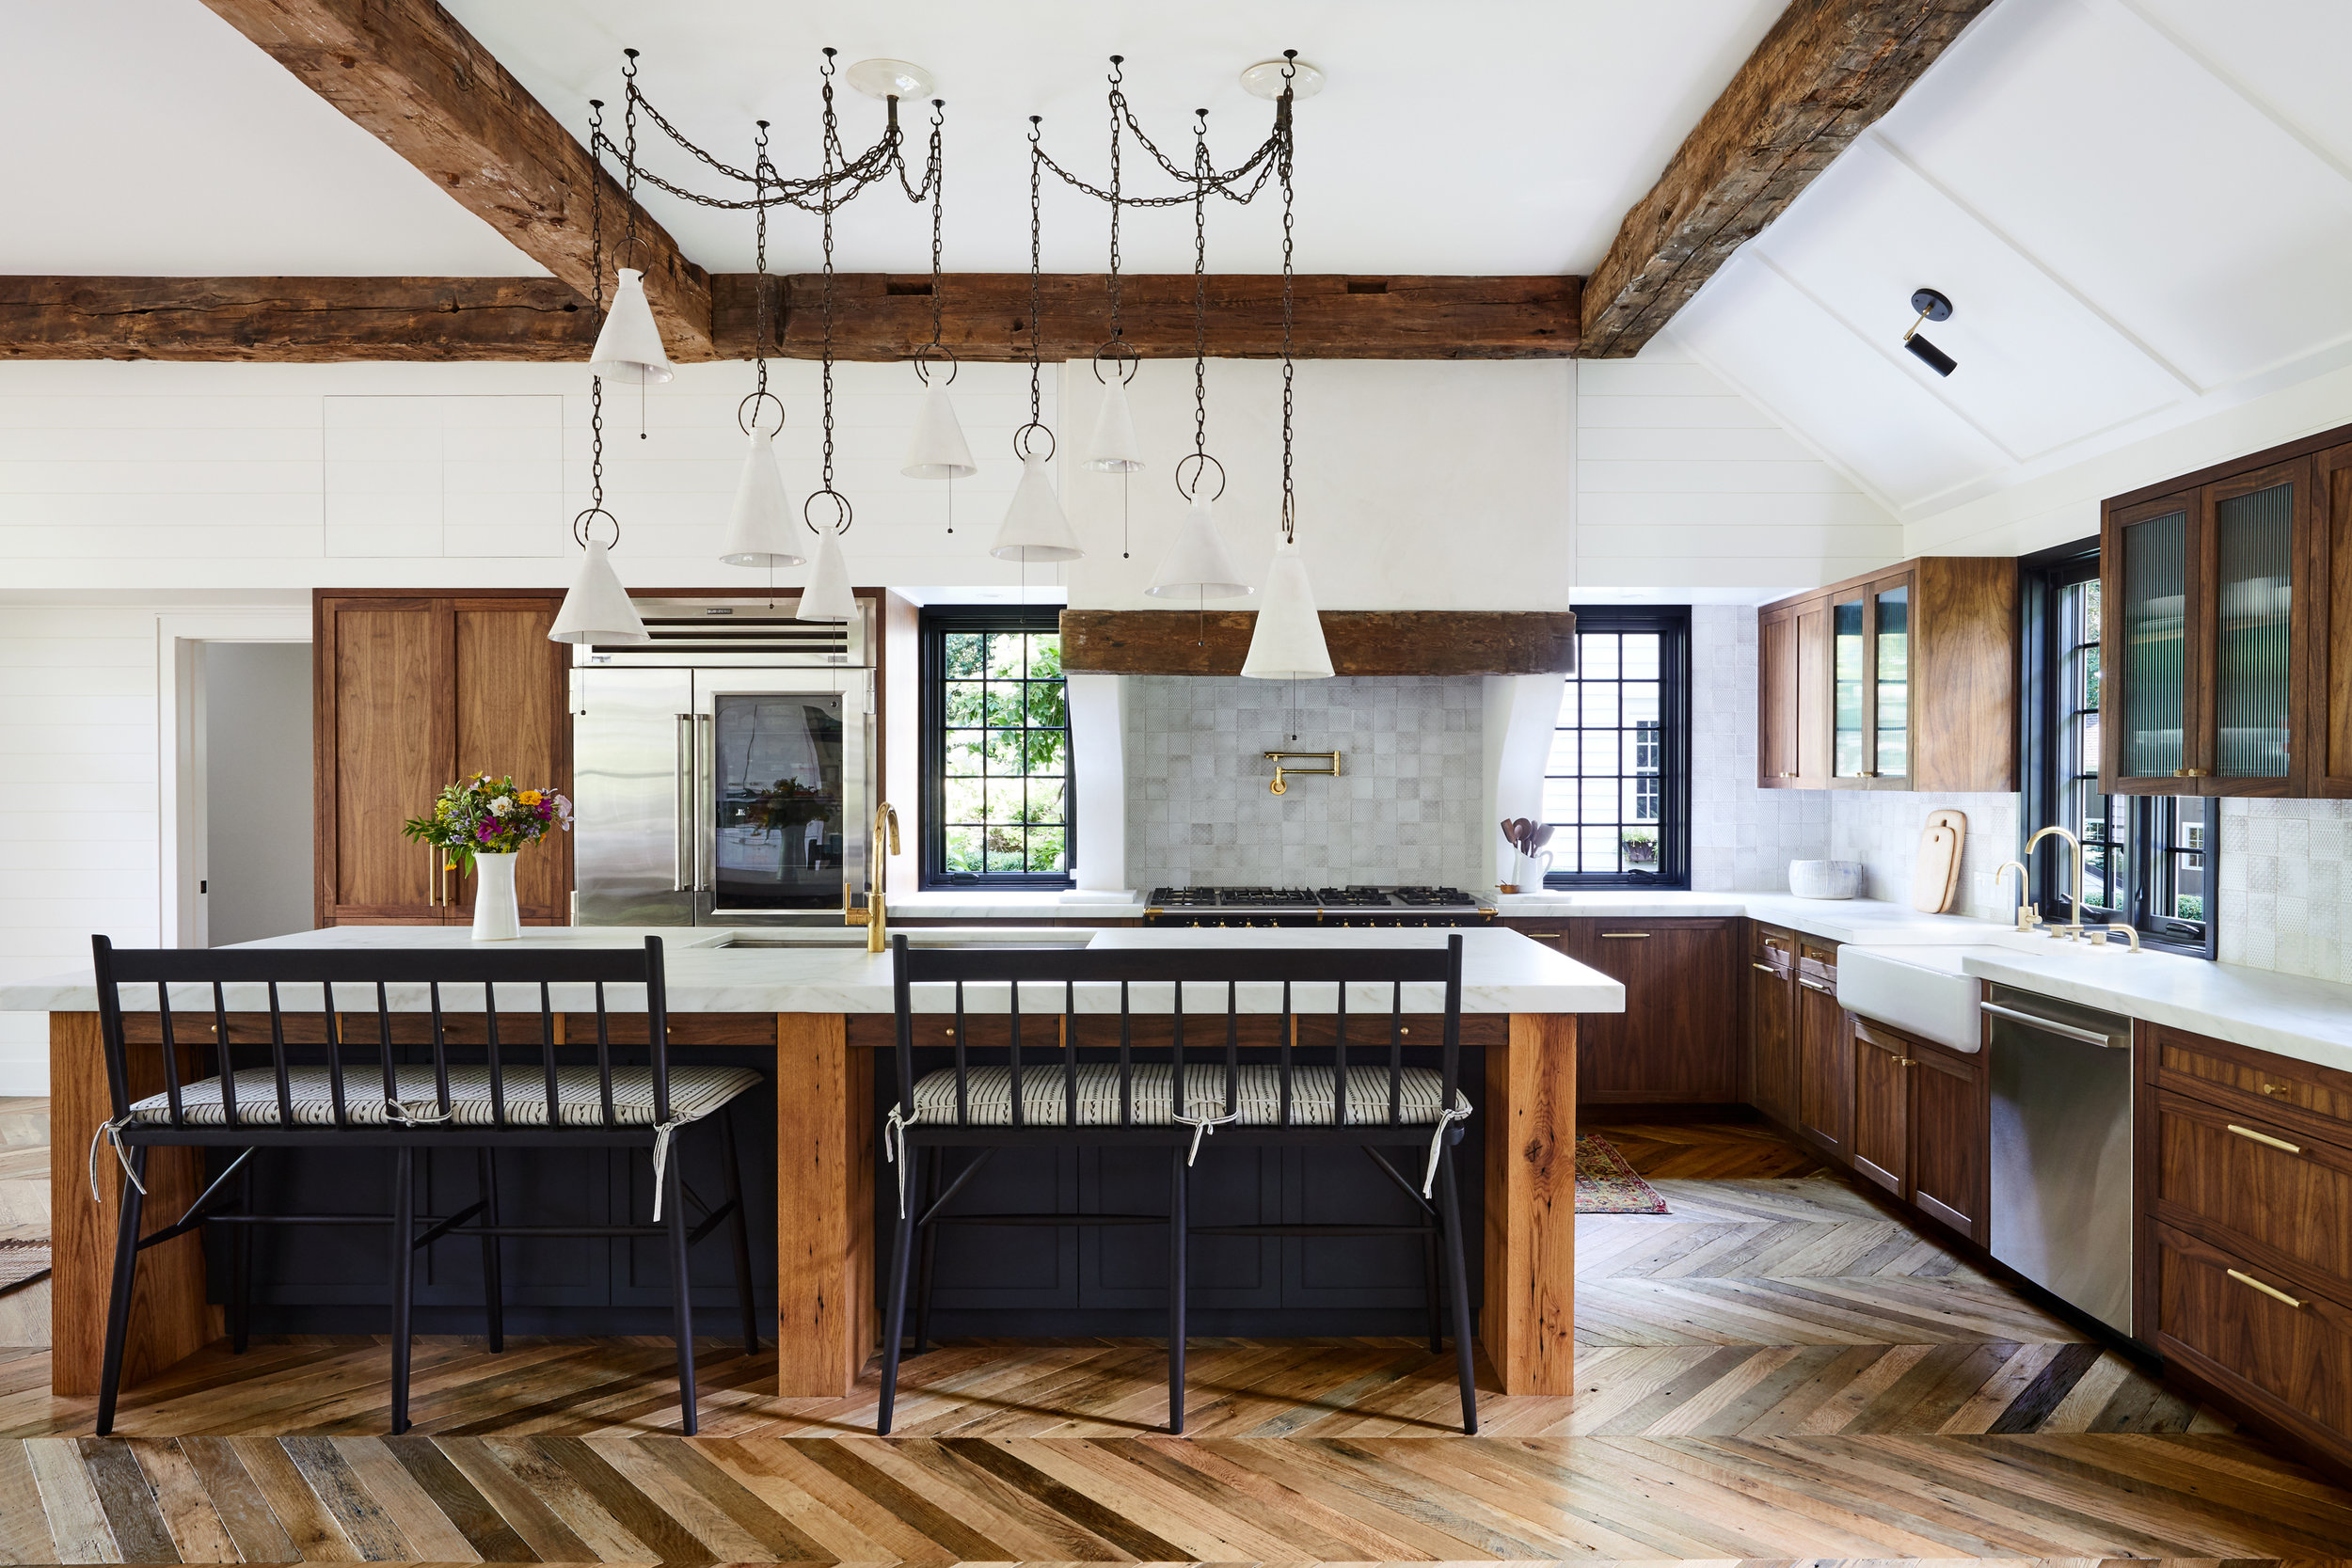 Lords_Hwy_Main_House_Kitchen_003.jpg